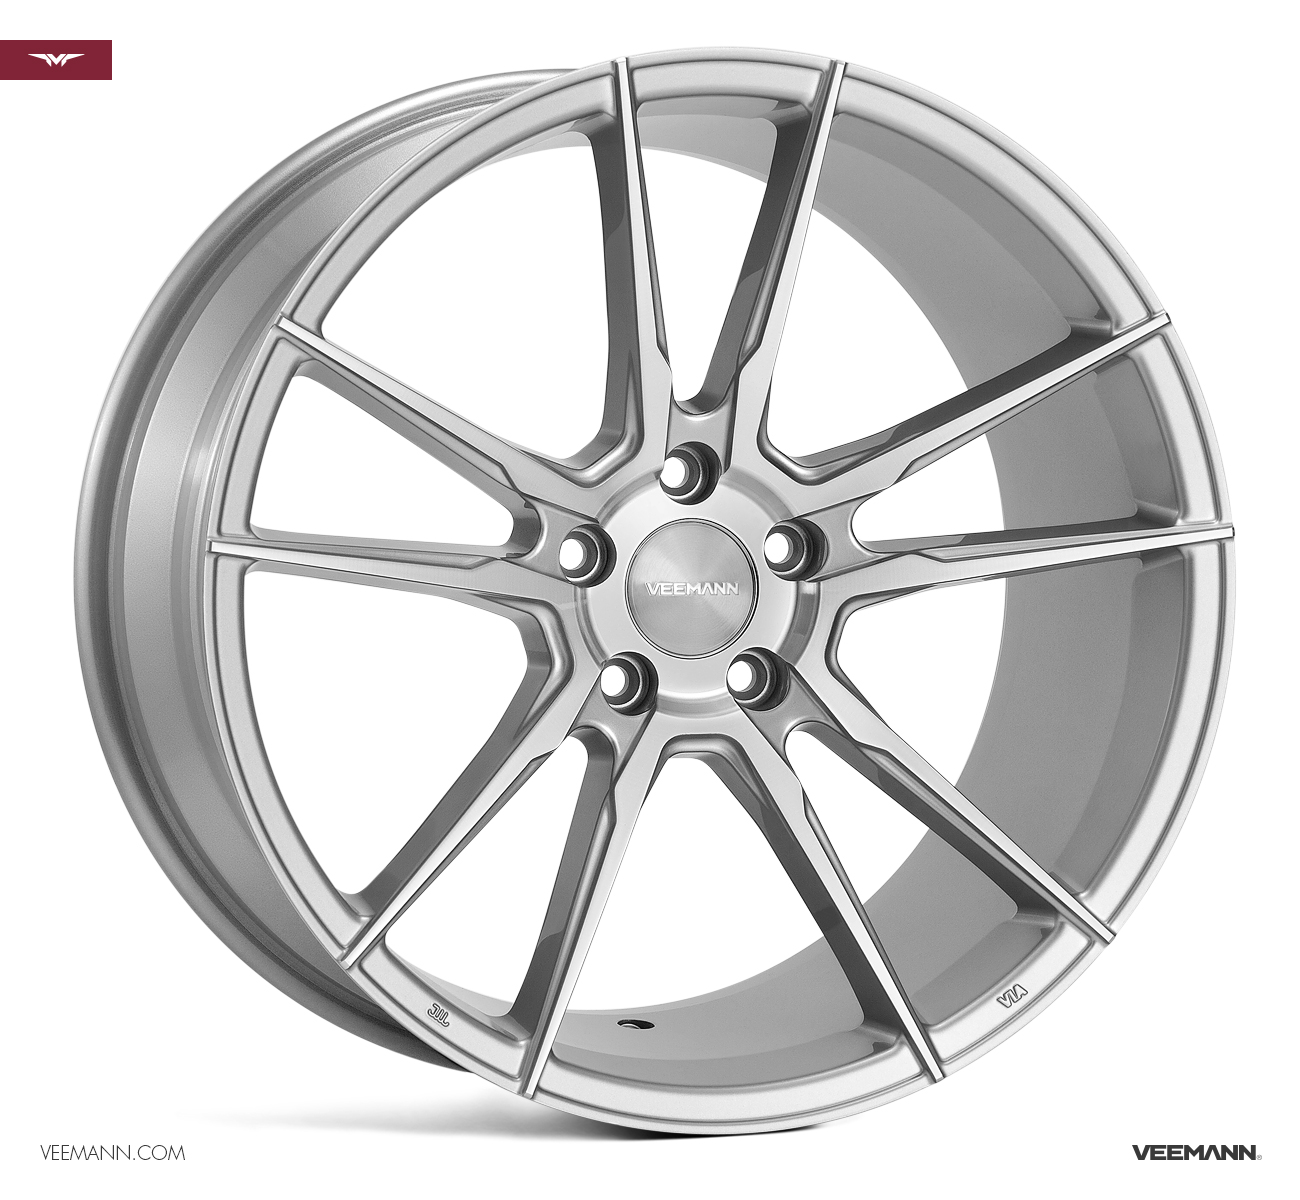 "NEW 19"" VEEMANN V-FS24 ALLOYS IN SILVER POL WITH WIDER 9.5"" REARS"